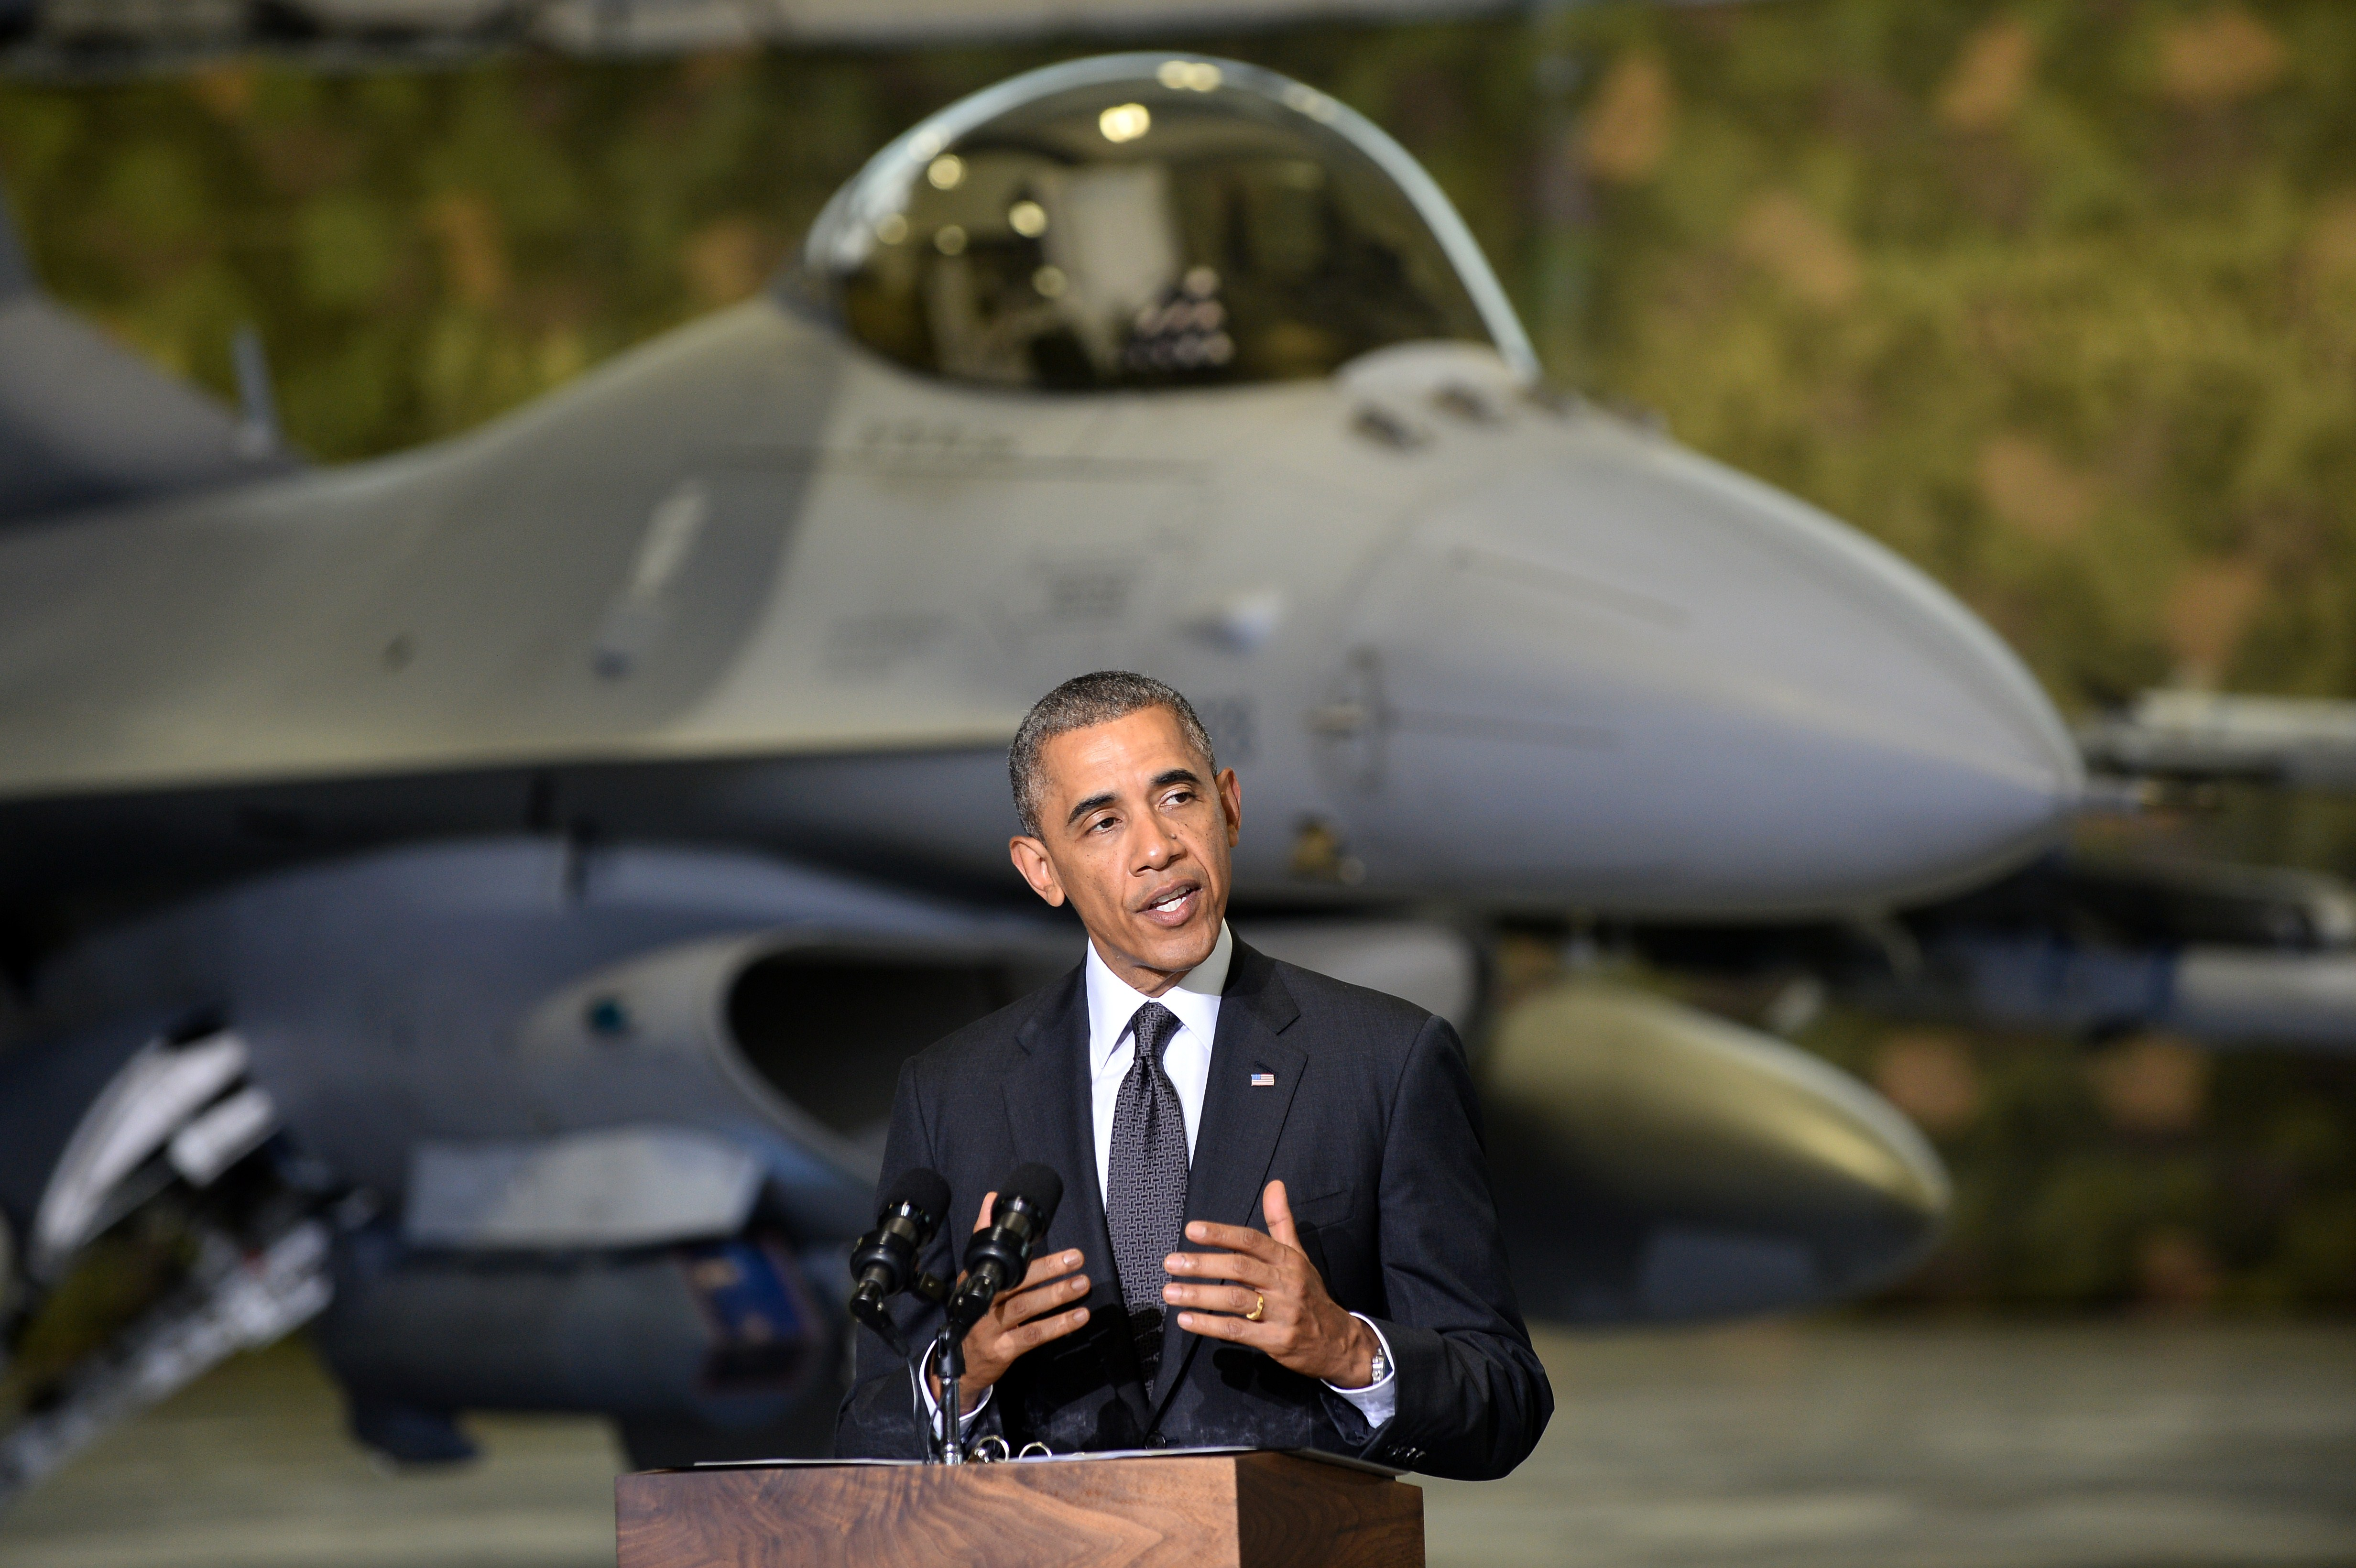 President Barack Obama addresses U.S. and Polish airmen in front of an F-16 fighter jet in a hangar at Warsaw.